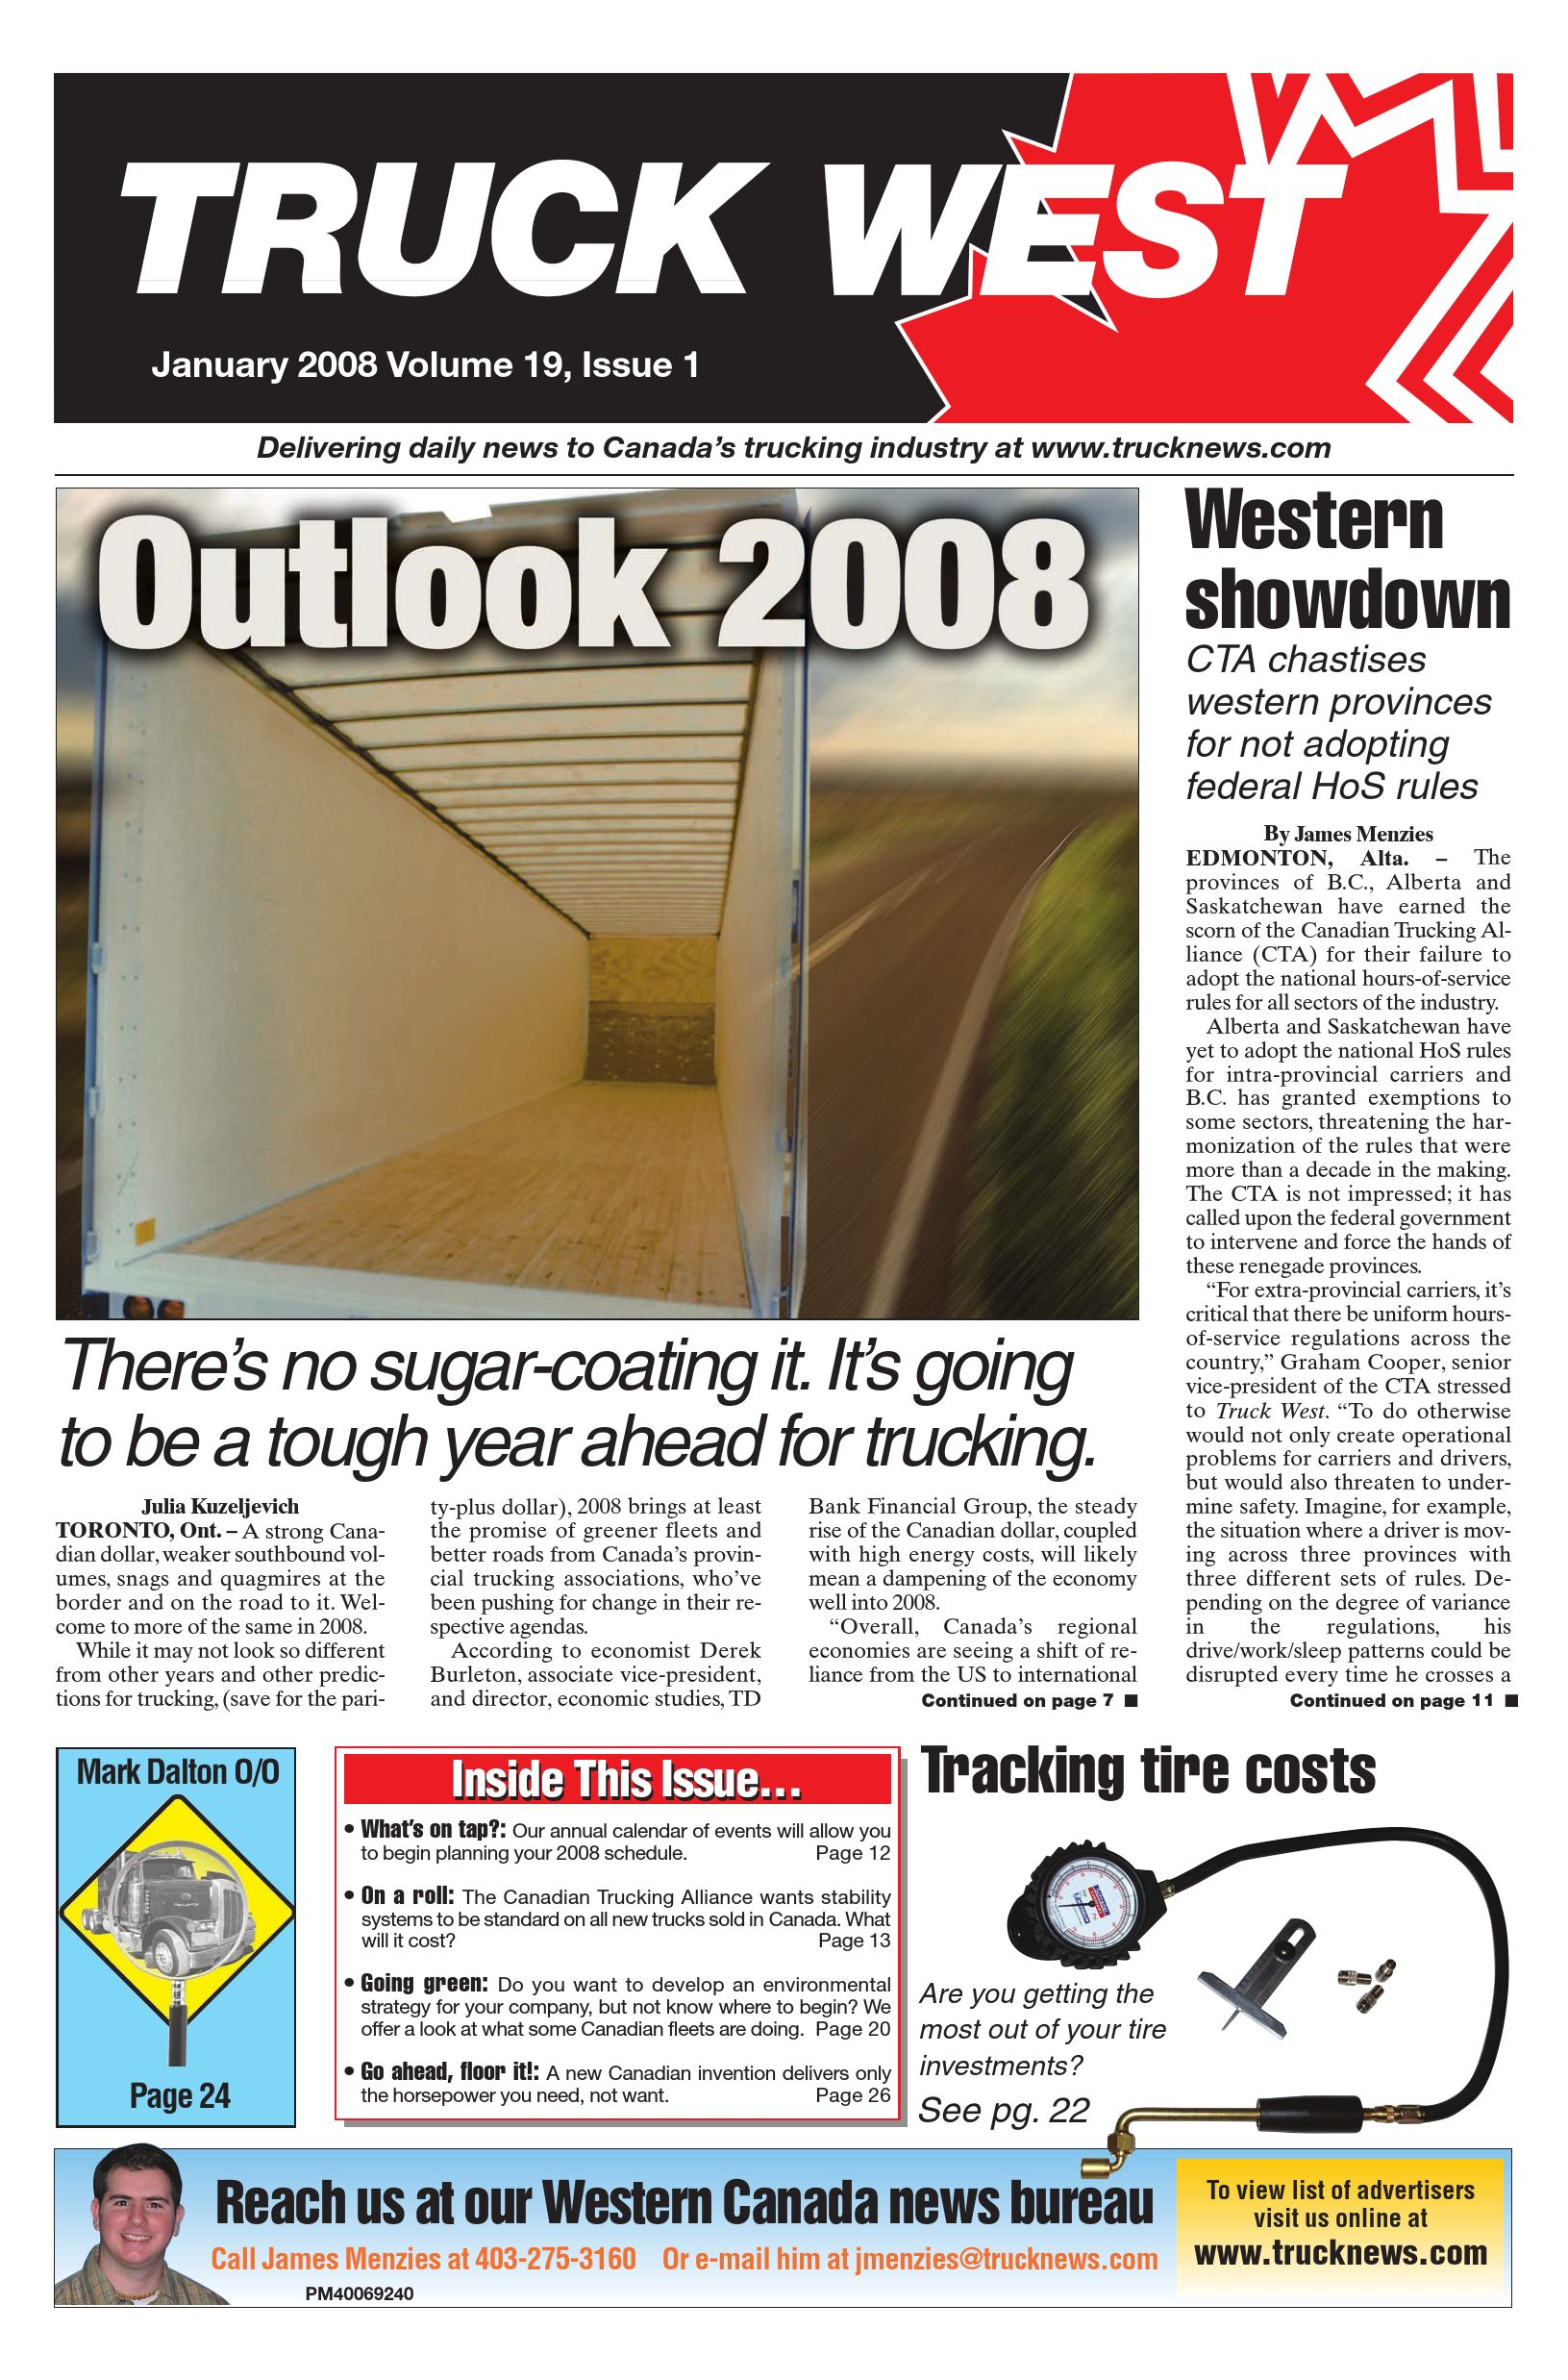 Truck News West – January 2008